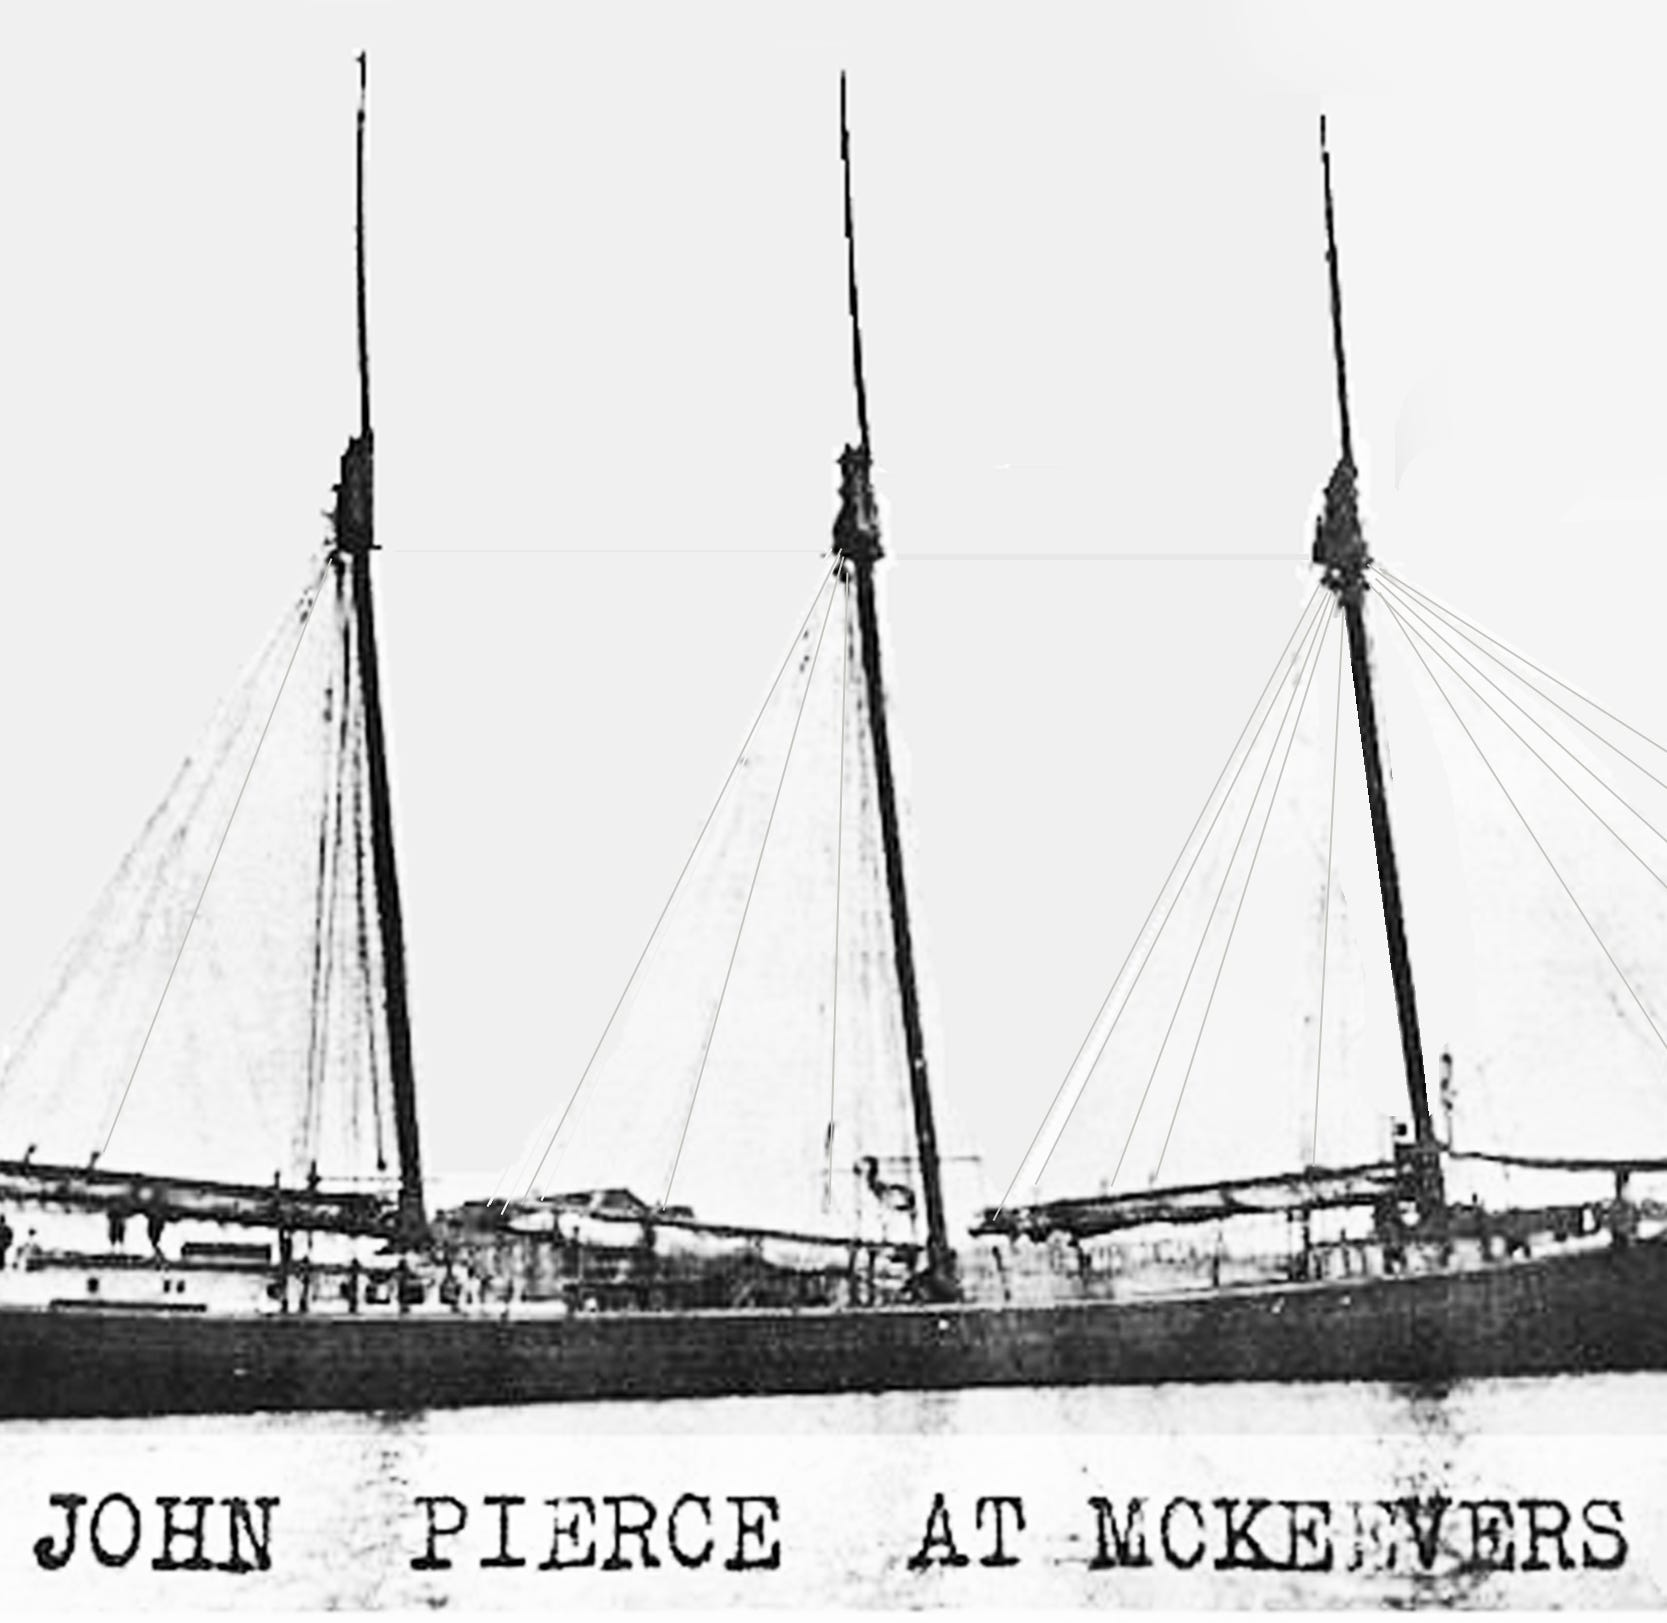 Who owned the Schooner John Pierce at the old fish factory?